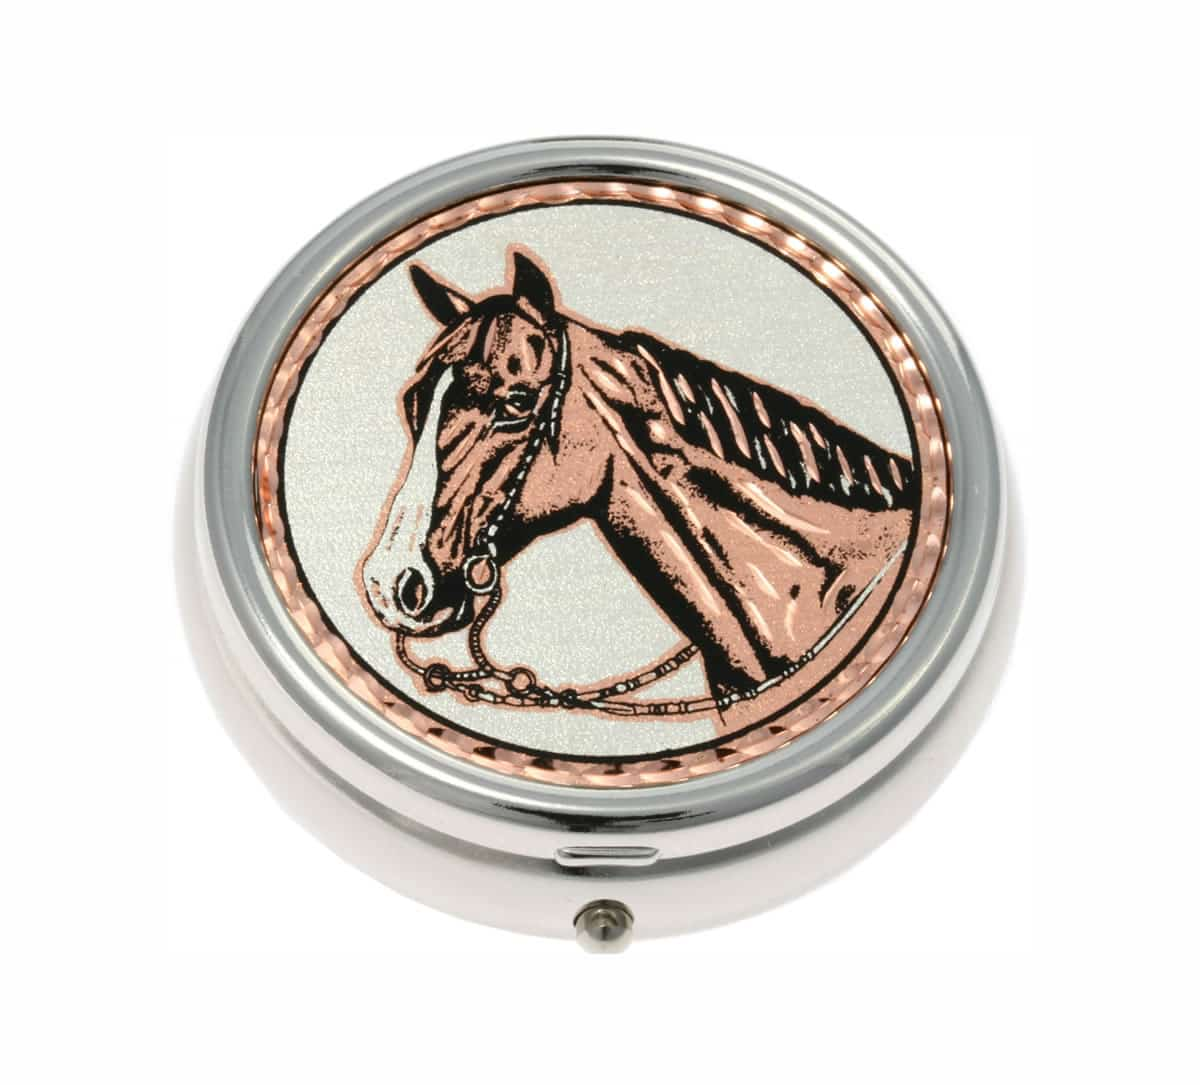 Buy Western Horse Head Handmade Copper Artwork Decorated Stylish Pill Boxes